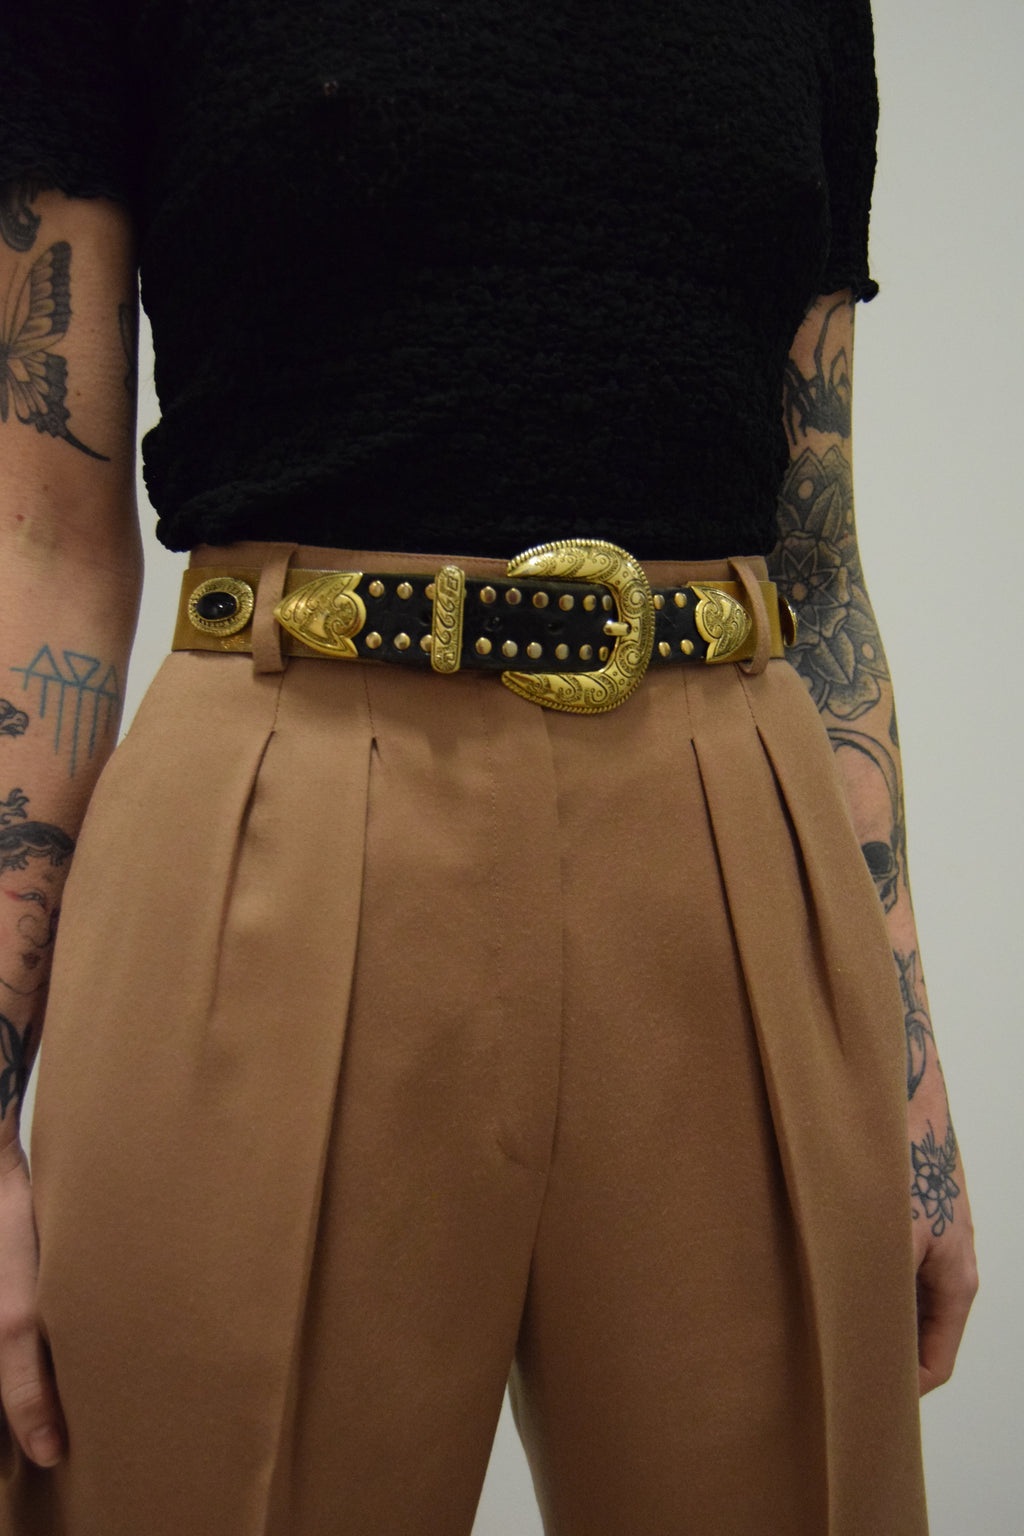 Vintage 90's Italian Gold Chain Western Belt FREE SHIPPING TO THE U.S.